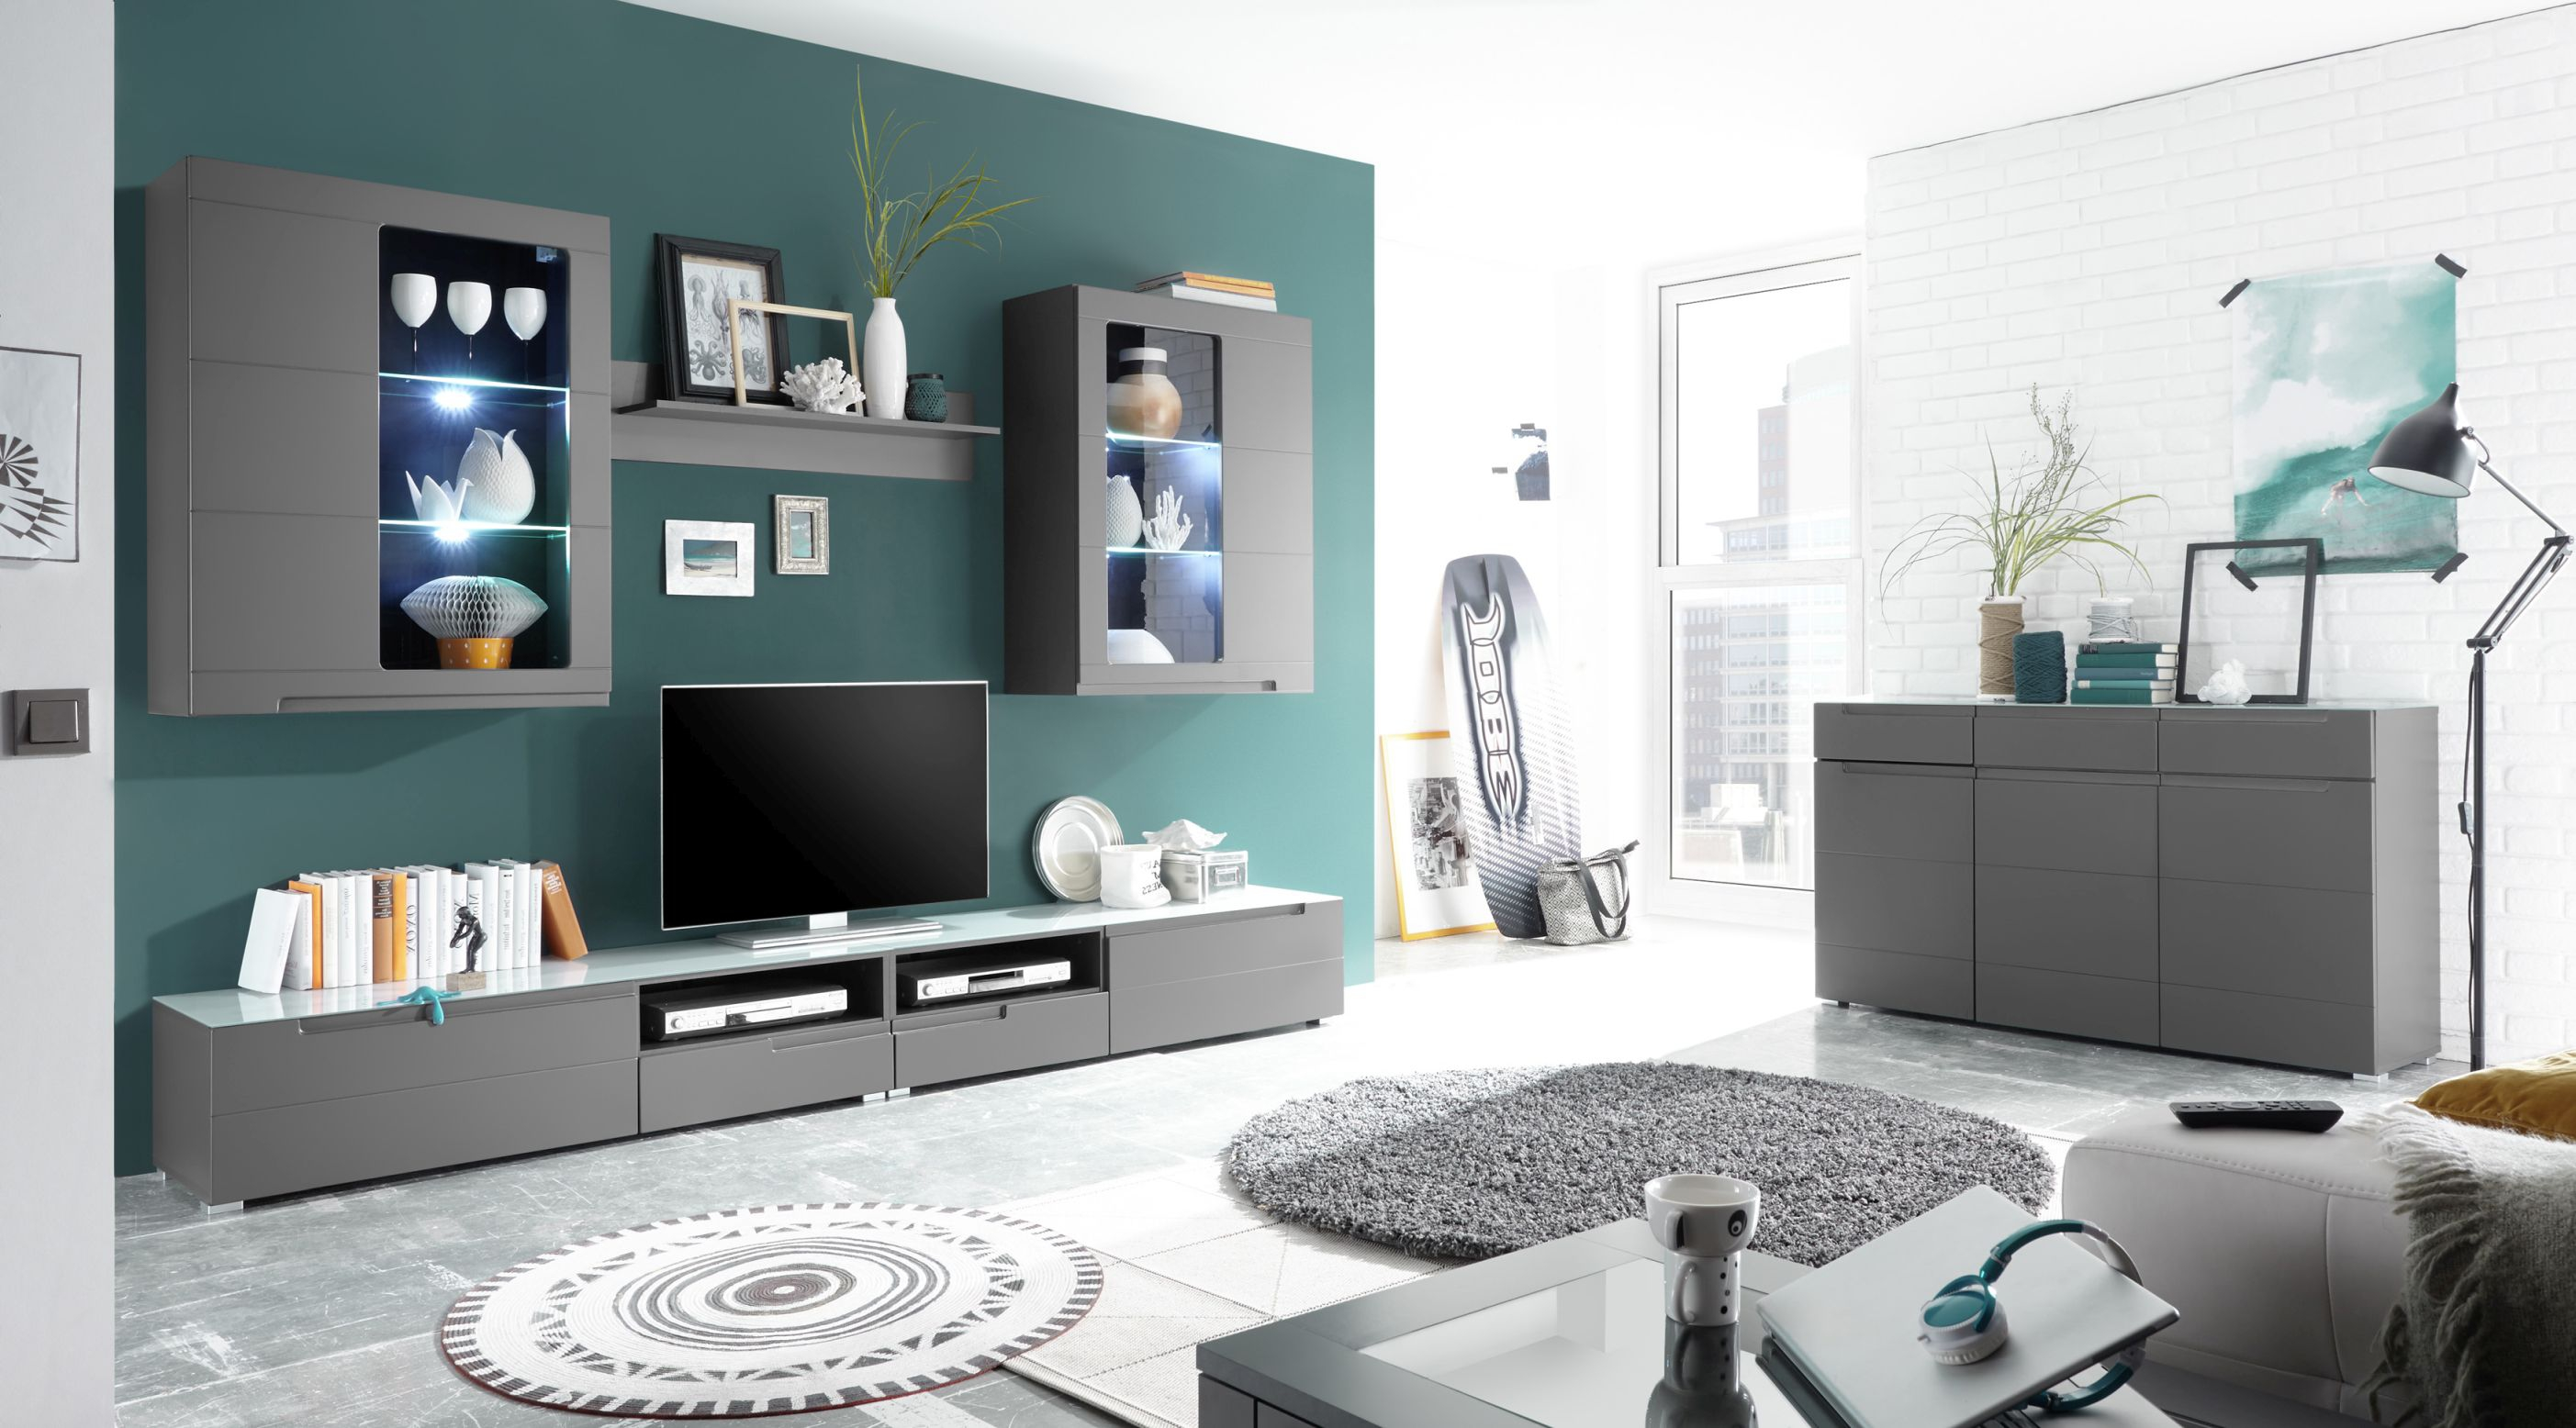 wohnwand wohnzimmer set 6 tlg grau matt sideboard satinierte glasplatte ebay. Black Bedroom Furniture Sets. Home Design Ideas